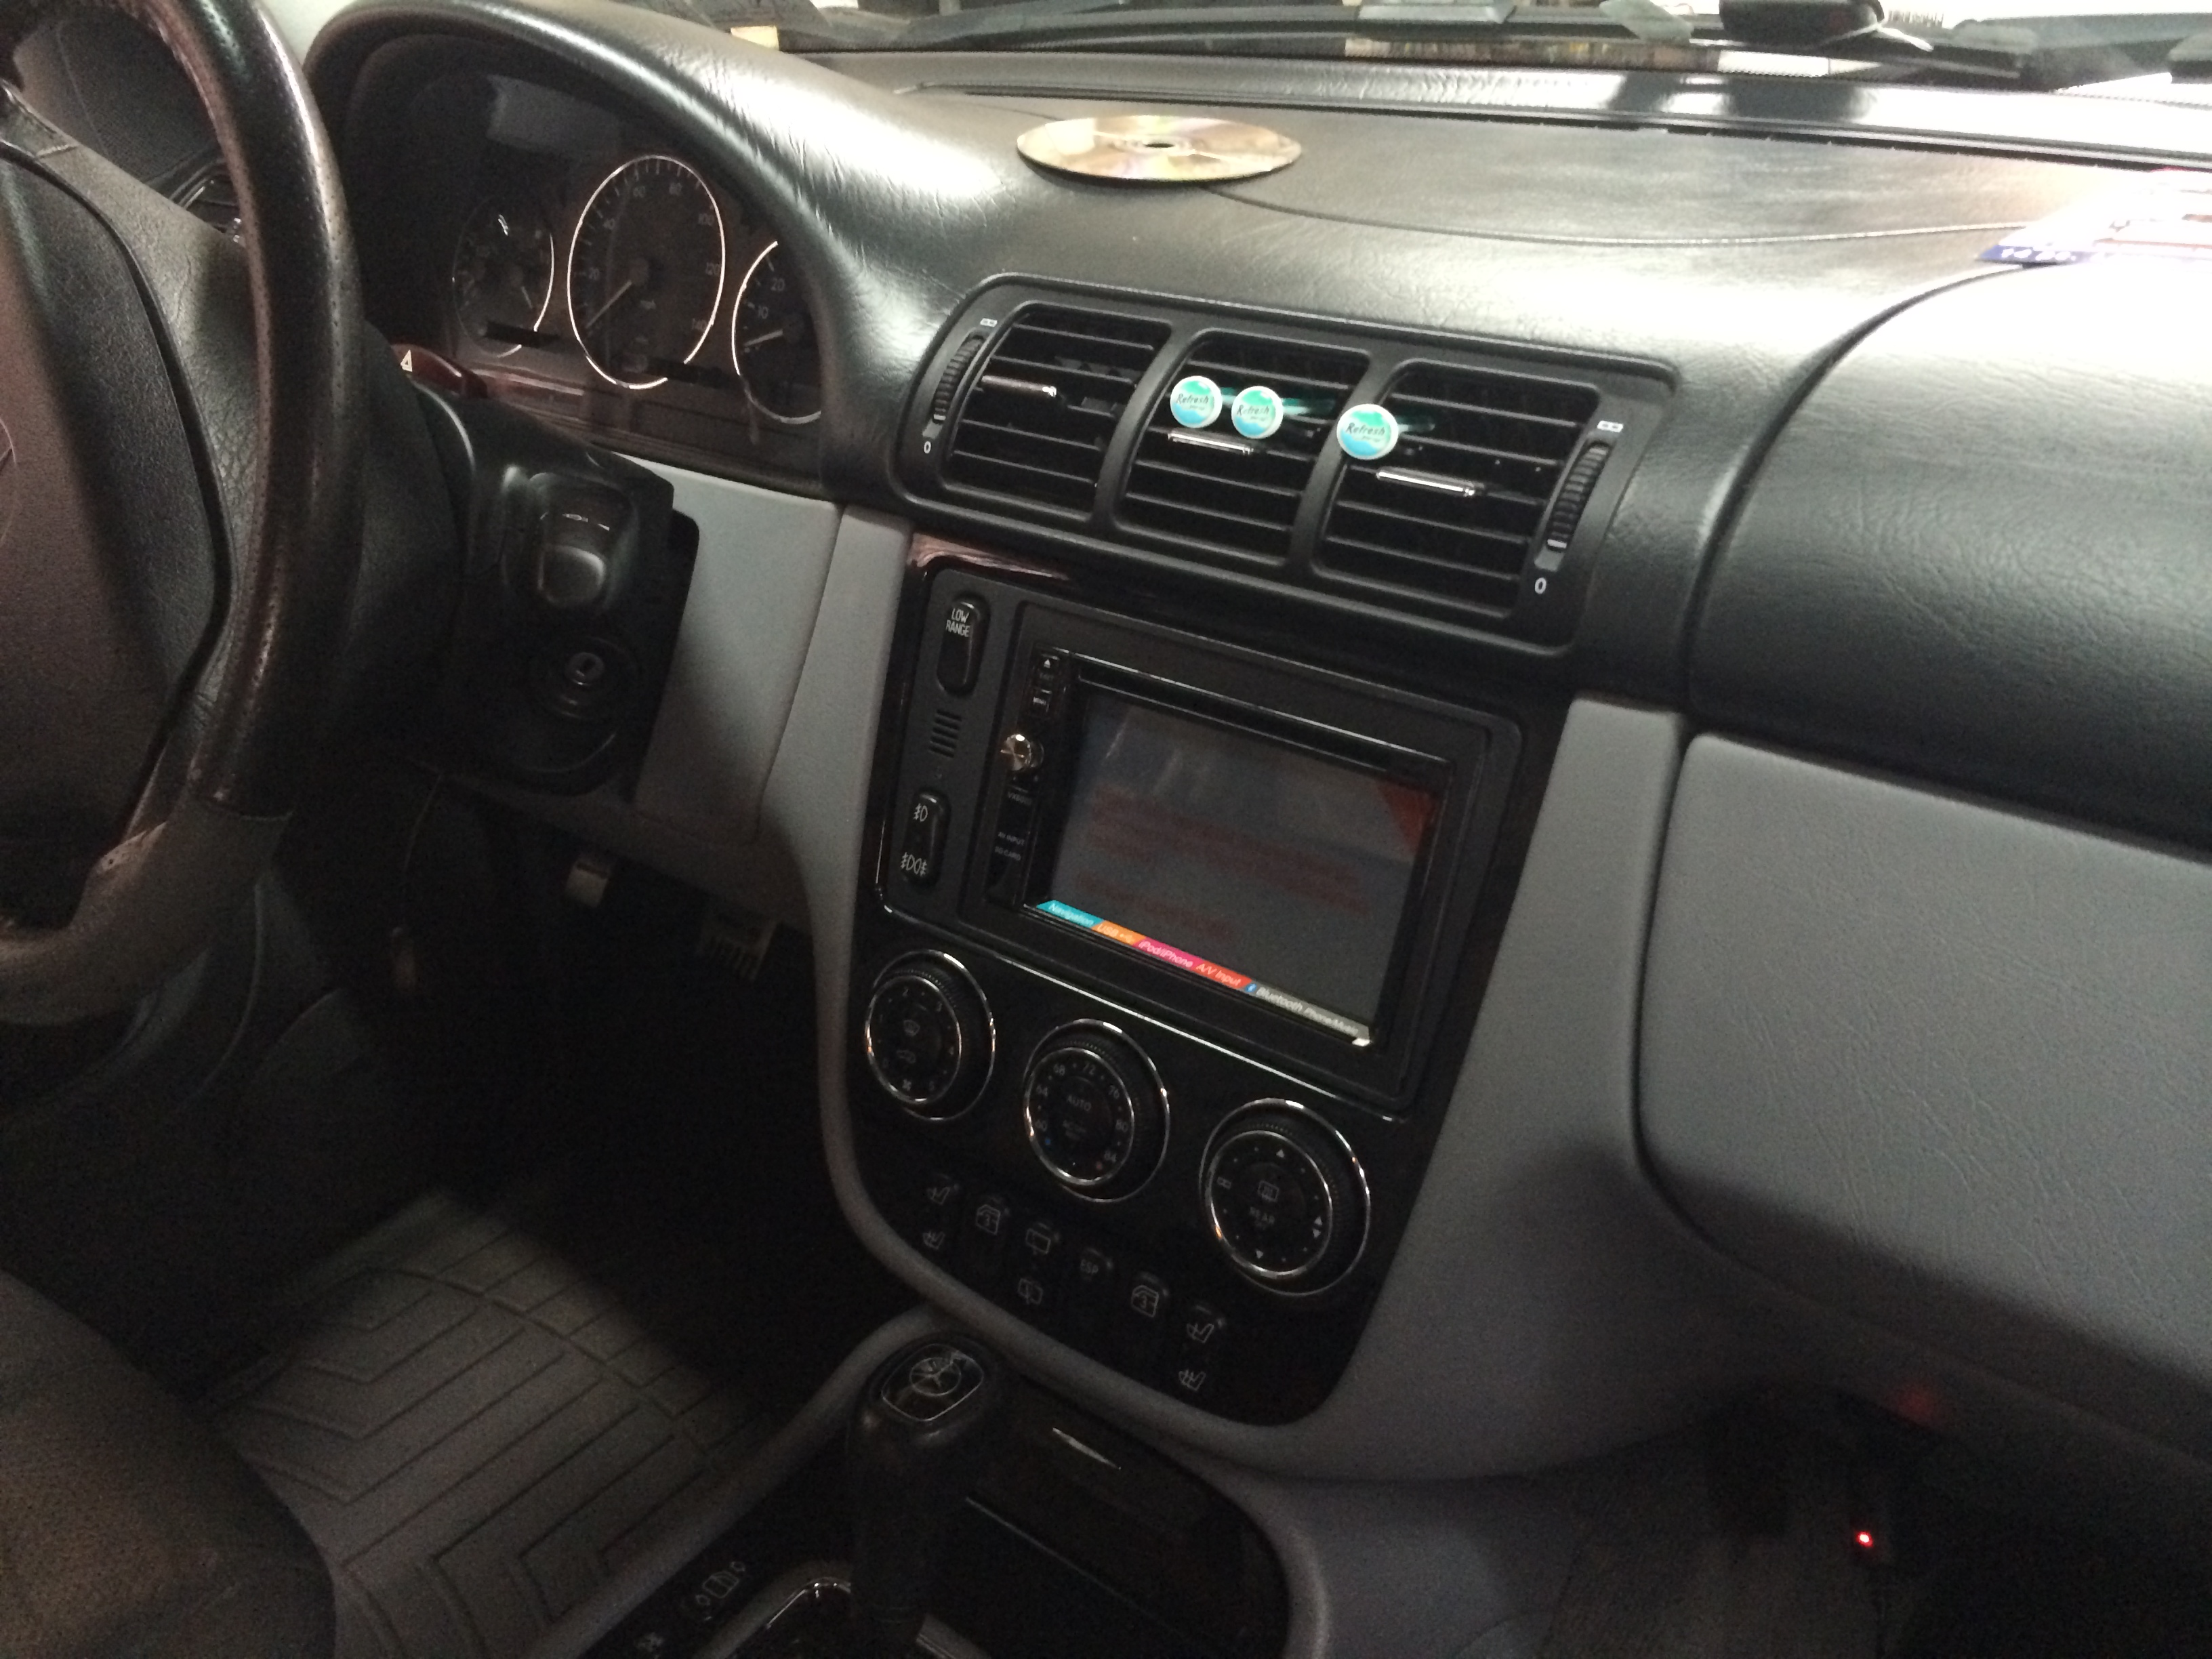 2006 mercedes ml350 nav install high end car stereos for Mercedes benz stereo installation